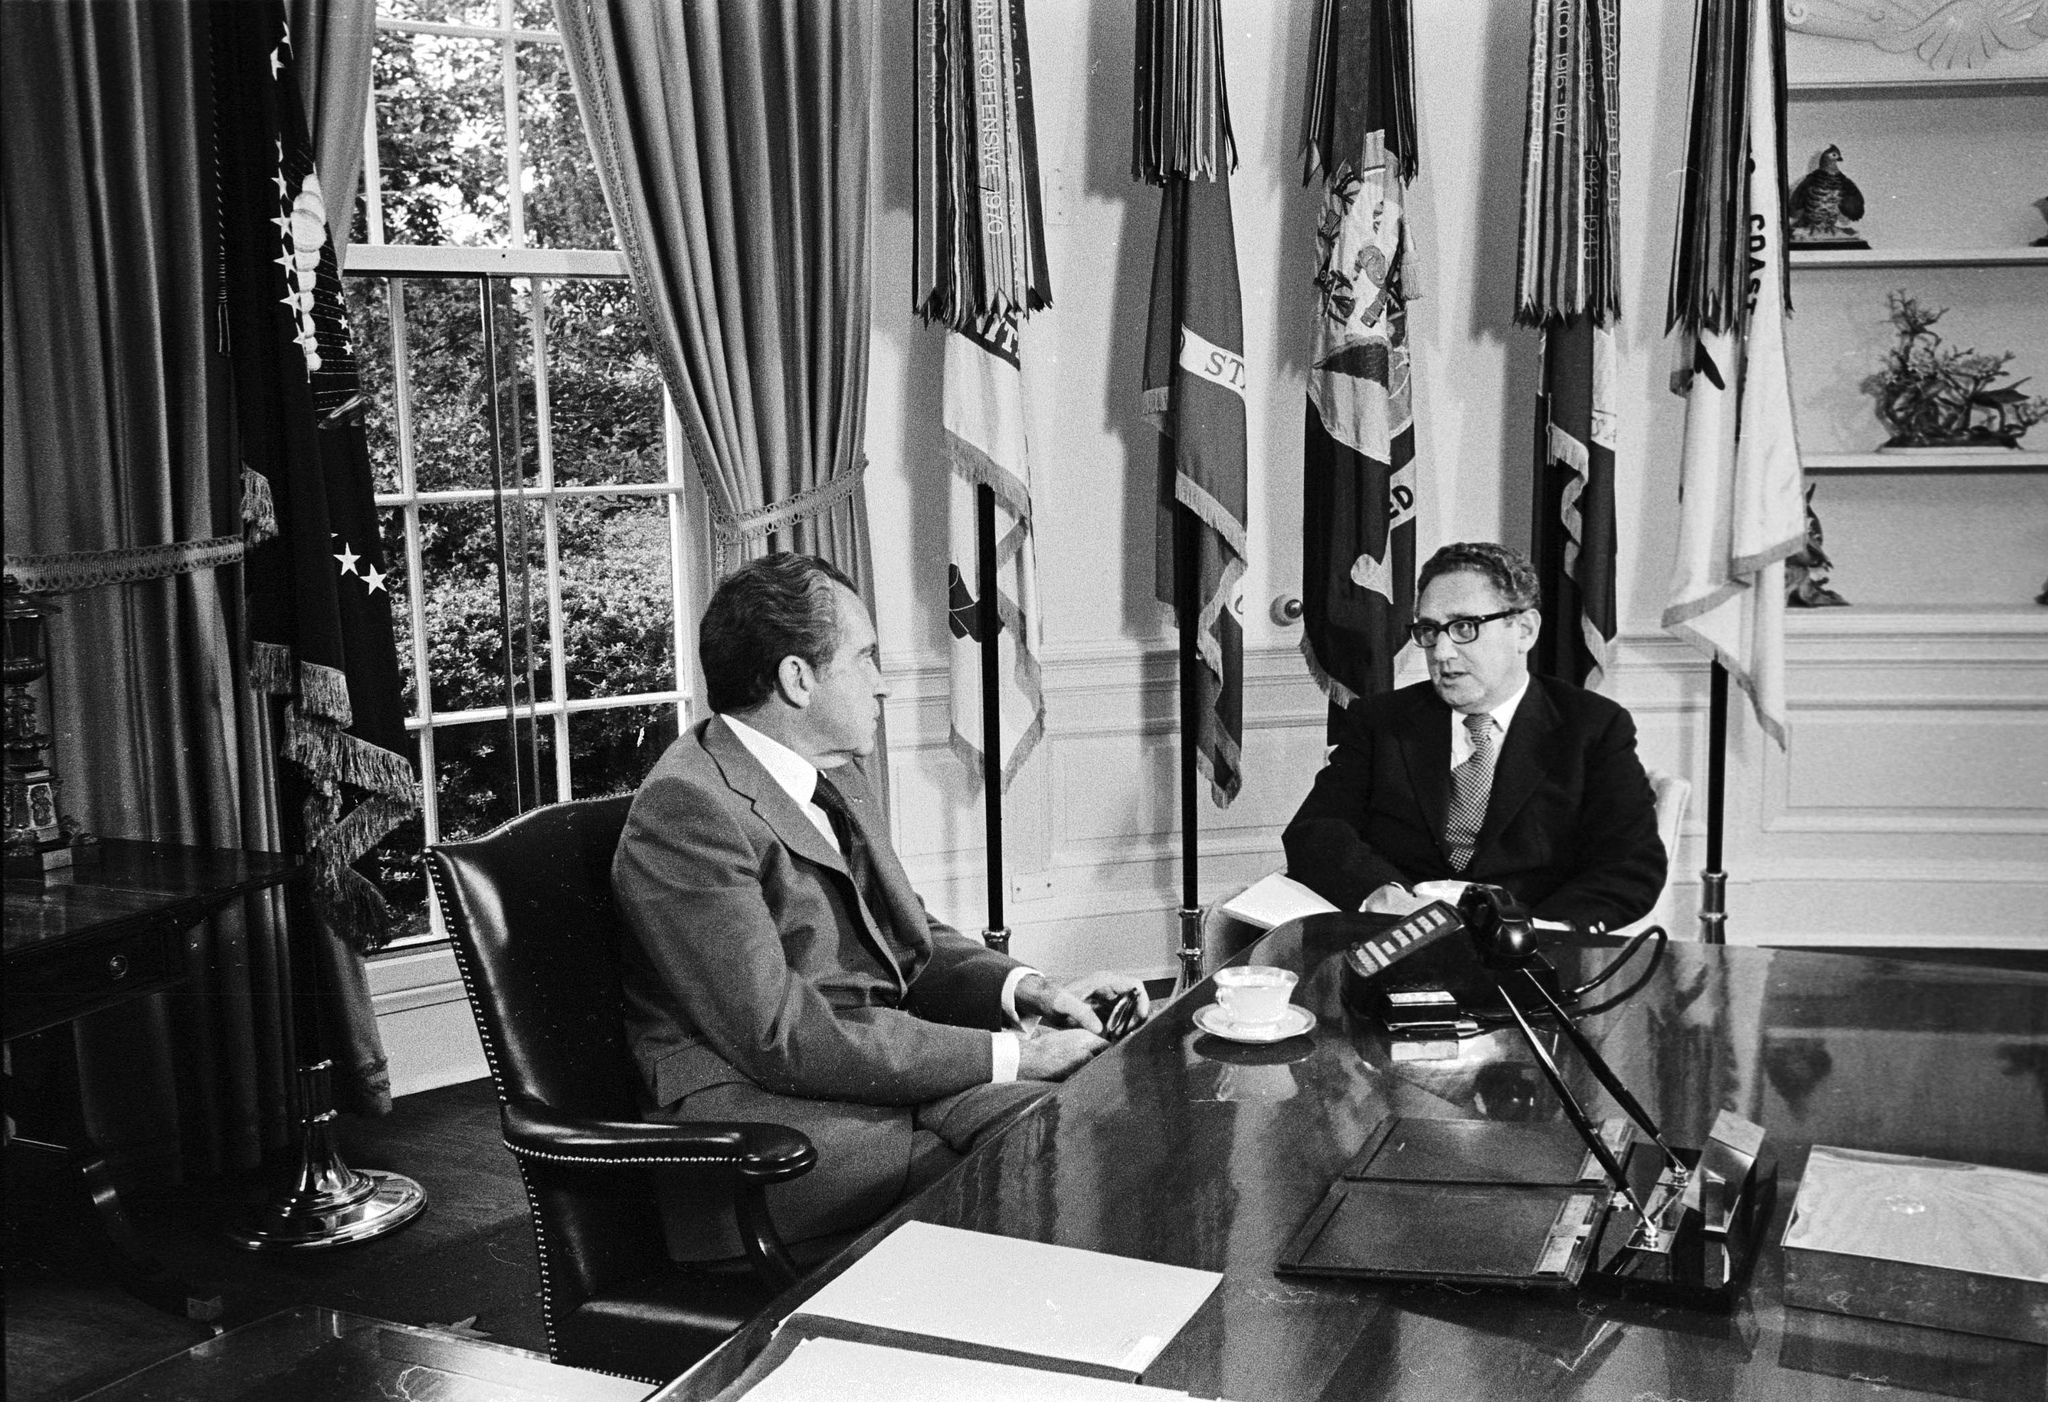 Nixon and Kissinger, 1973. Via the Central Intelligence Agency.